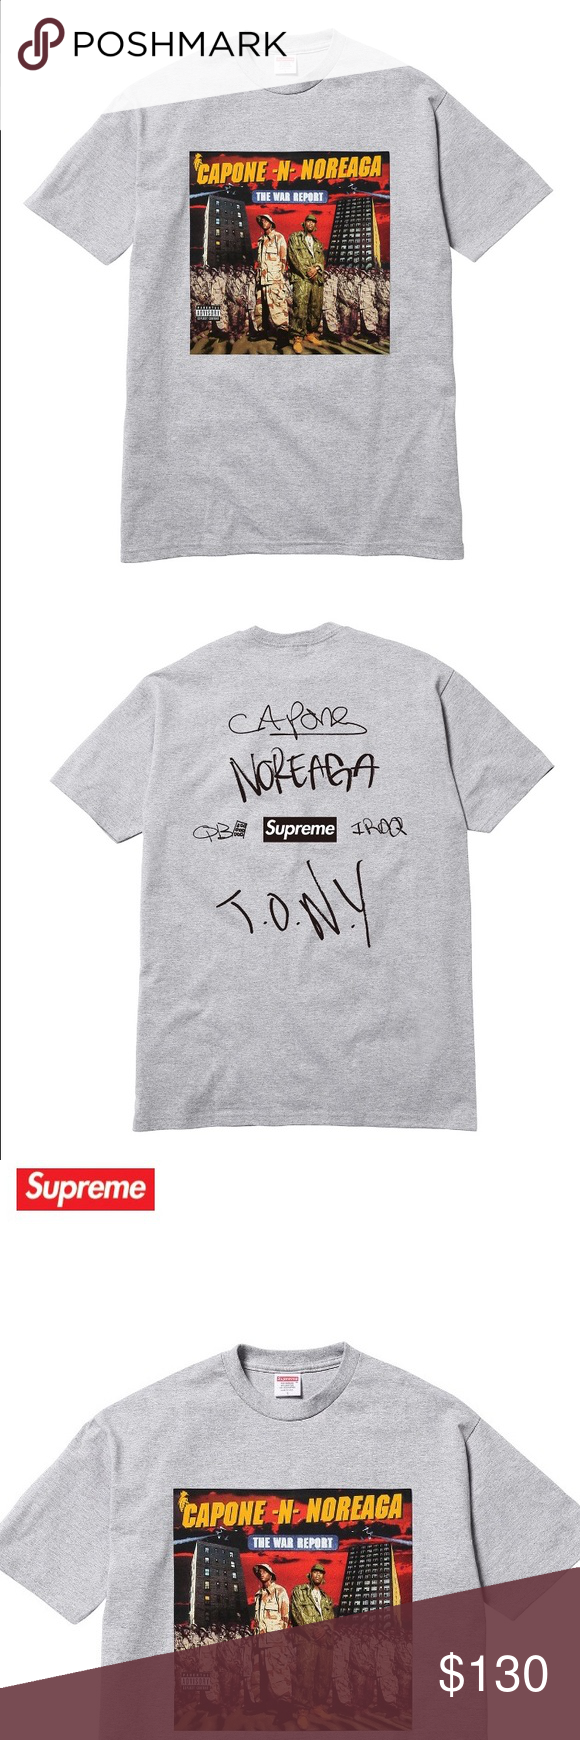 dd9d6365 Supreme Cnn war report tee FW16 supreme war report Capone n noreaga tee in  grey size medium has box logo on back nice shirt will post new pics when I  ...